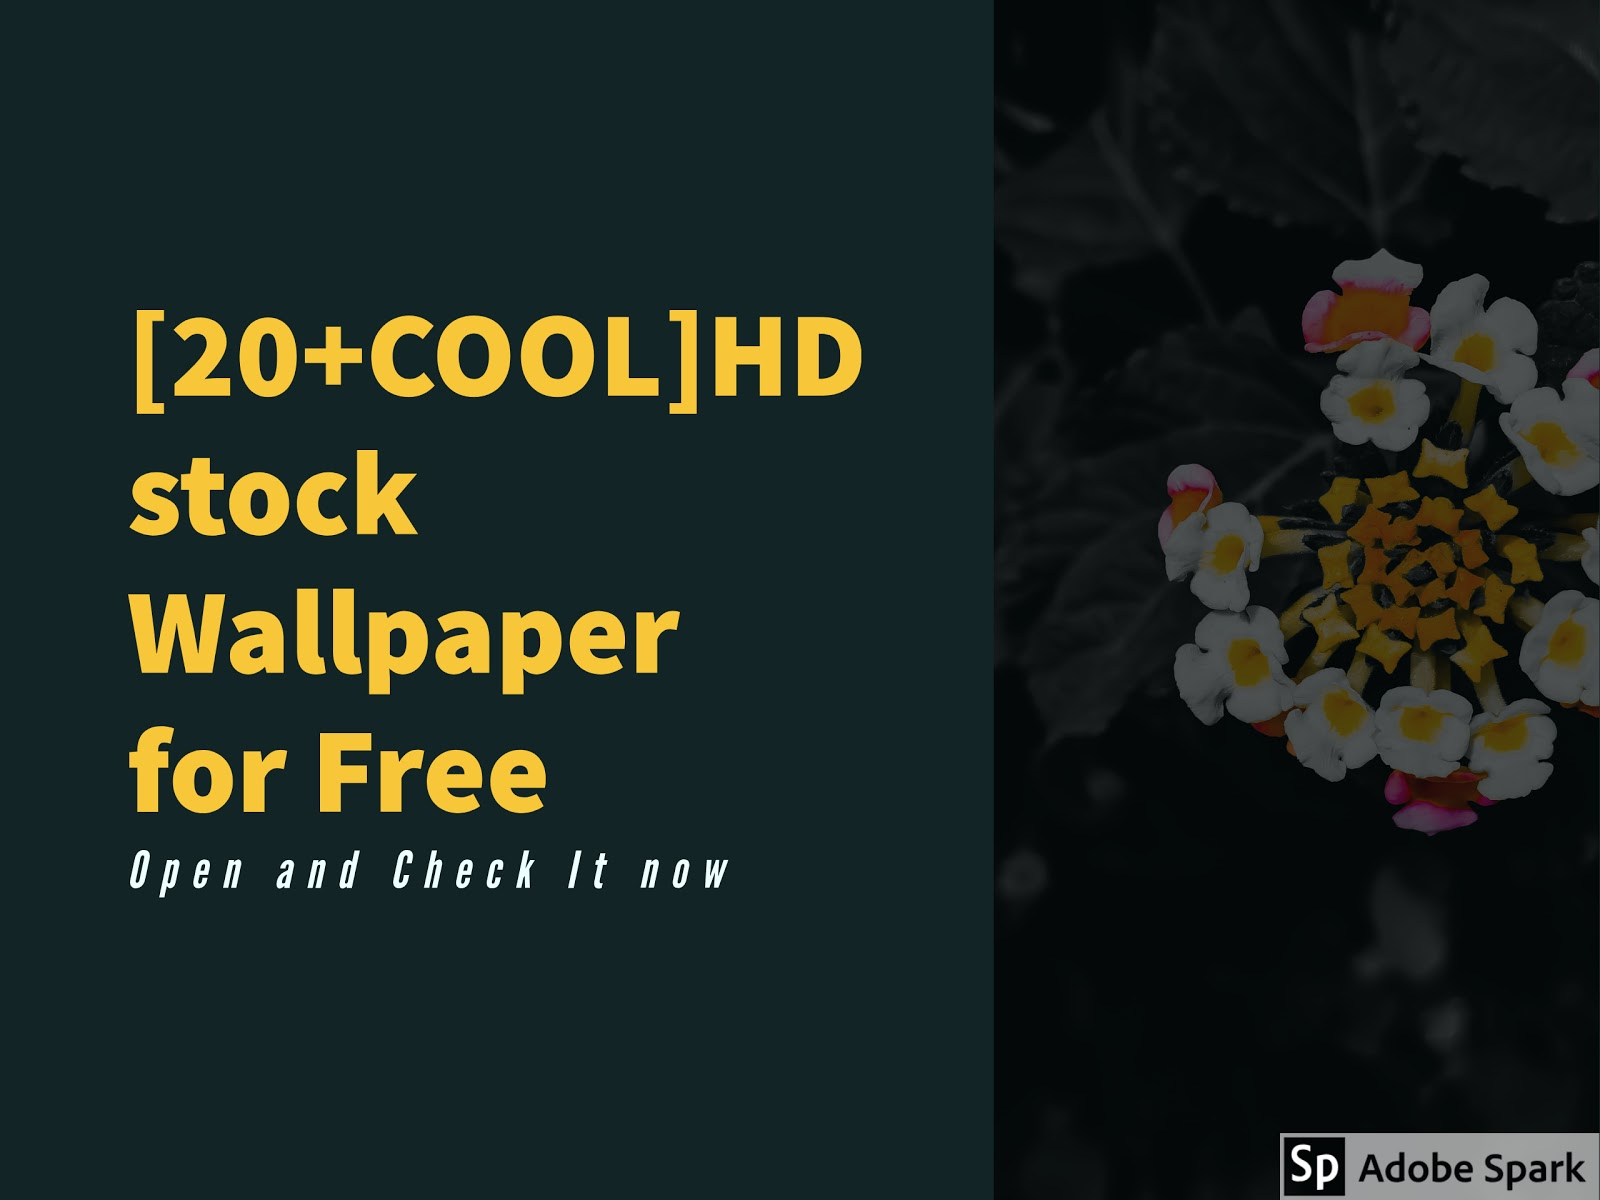 20+COOL ]FREE HD wallpaper for mobile 1920x1080